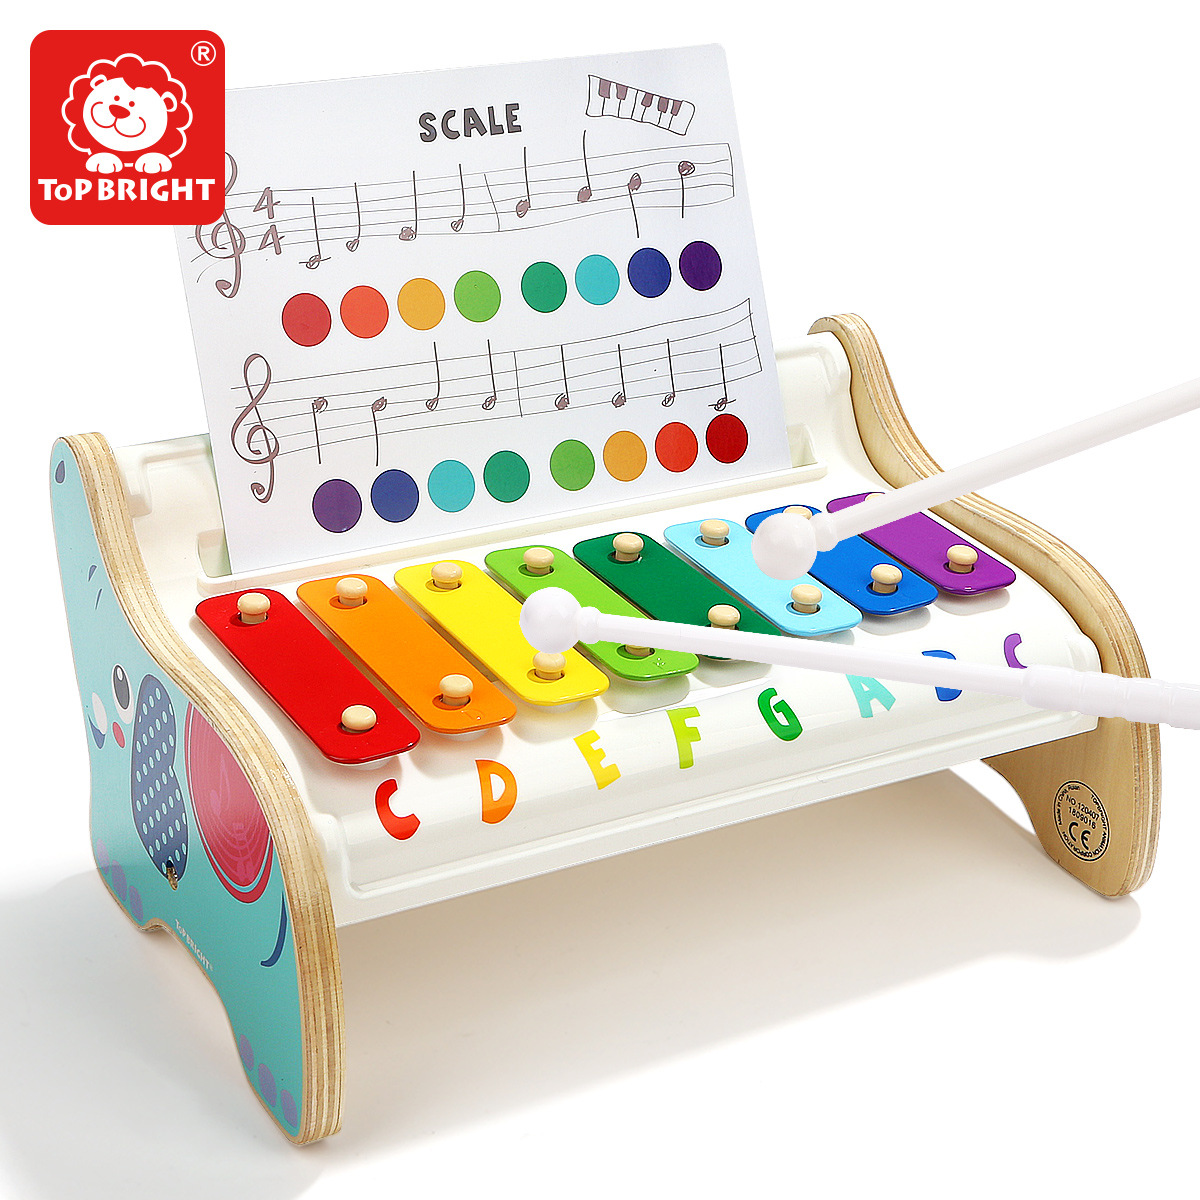 TOPBRIGHT 1-2-3-Year-Old Infant Music Toy Piano Baby wan ju qin Children Music Box Xylophone Percussion Instrument image